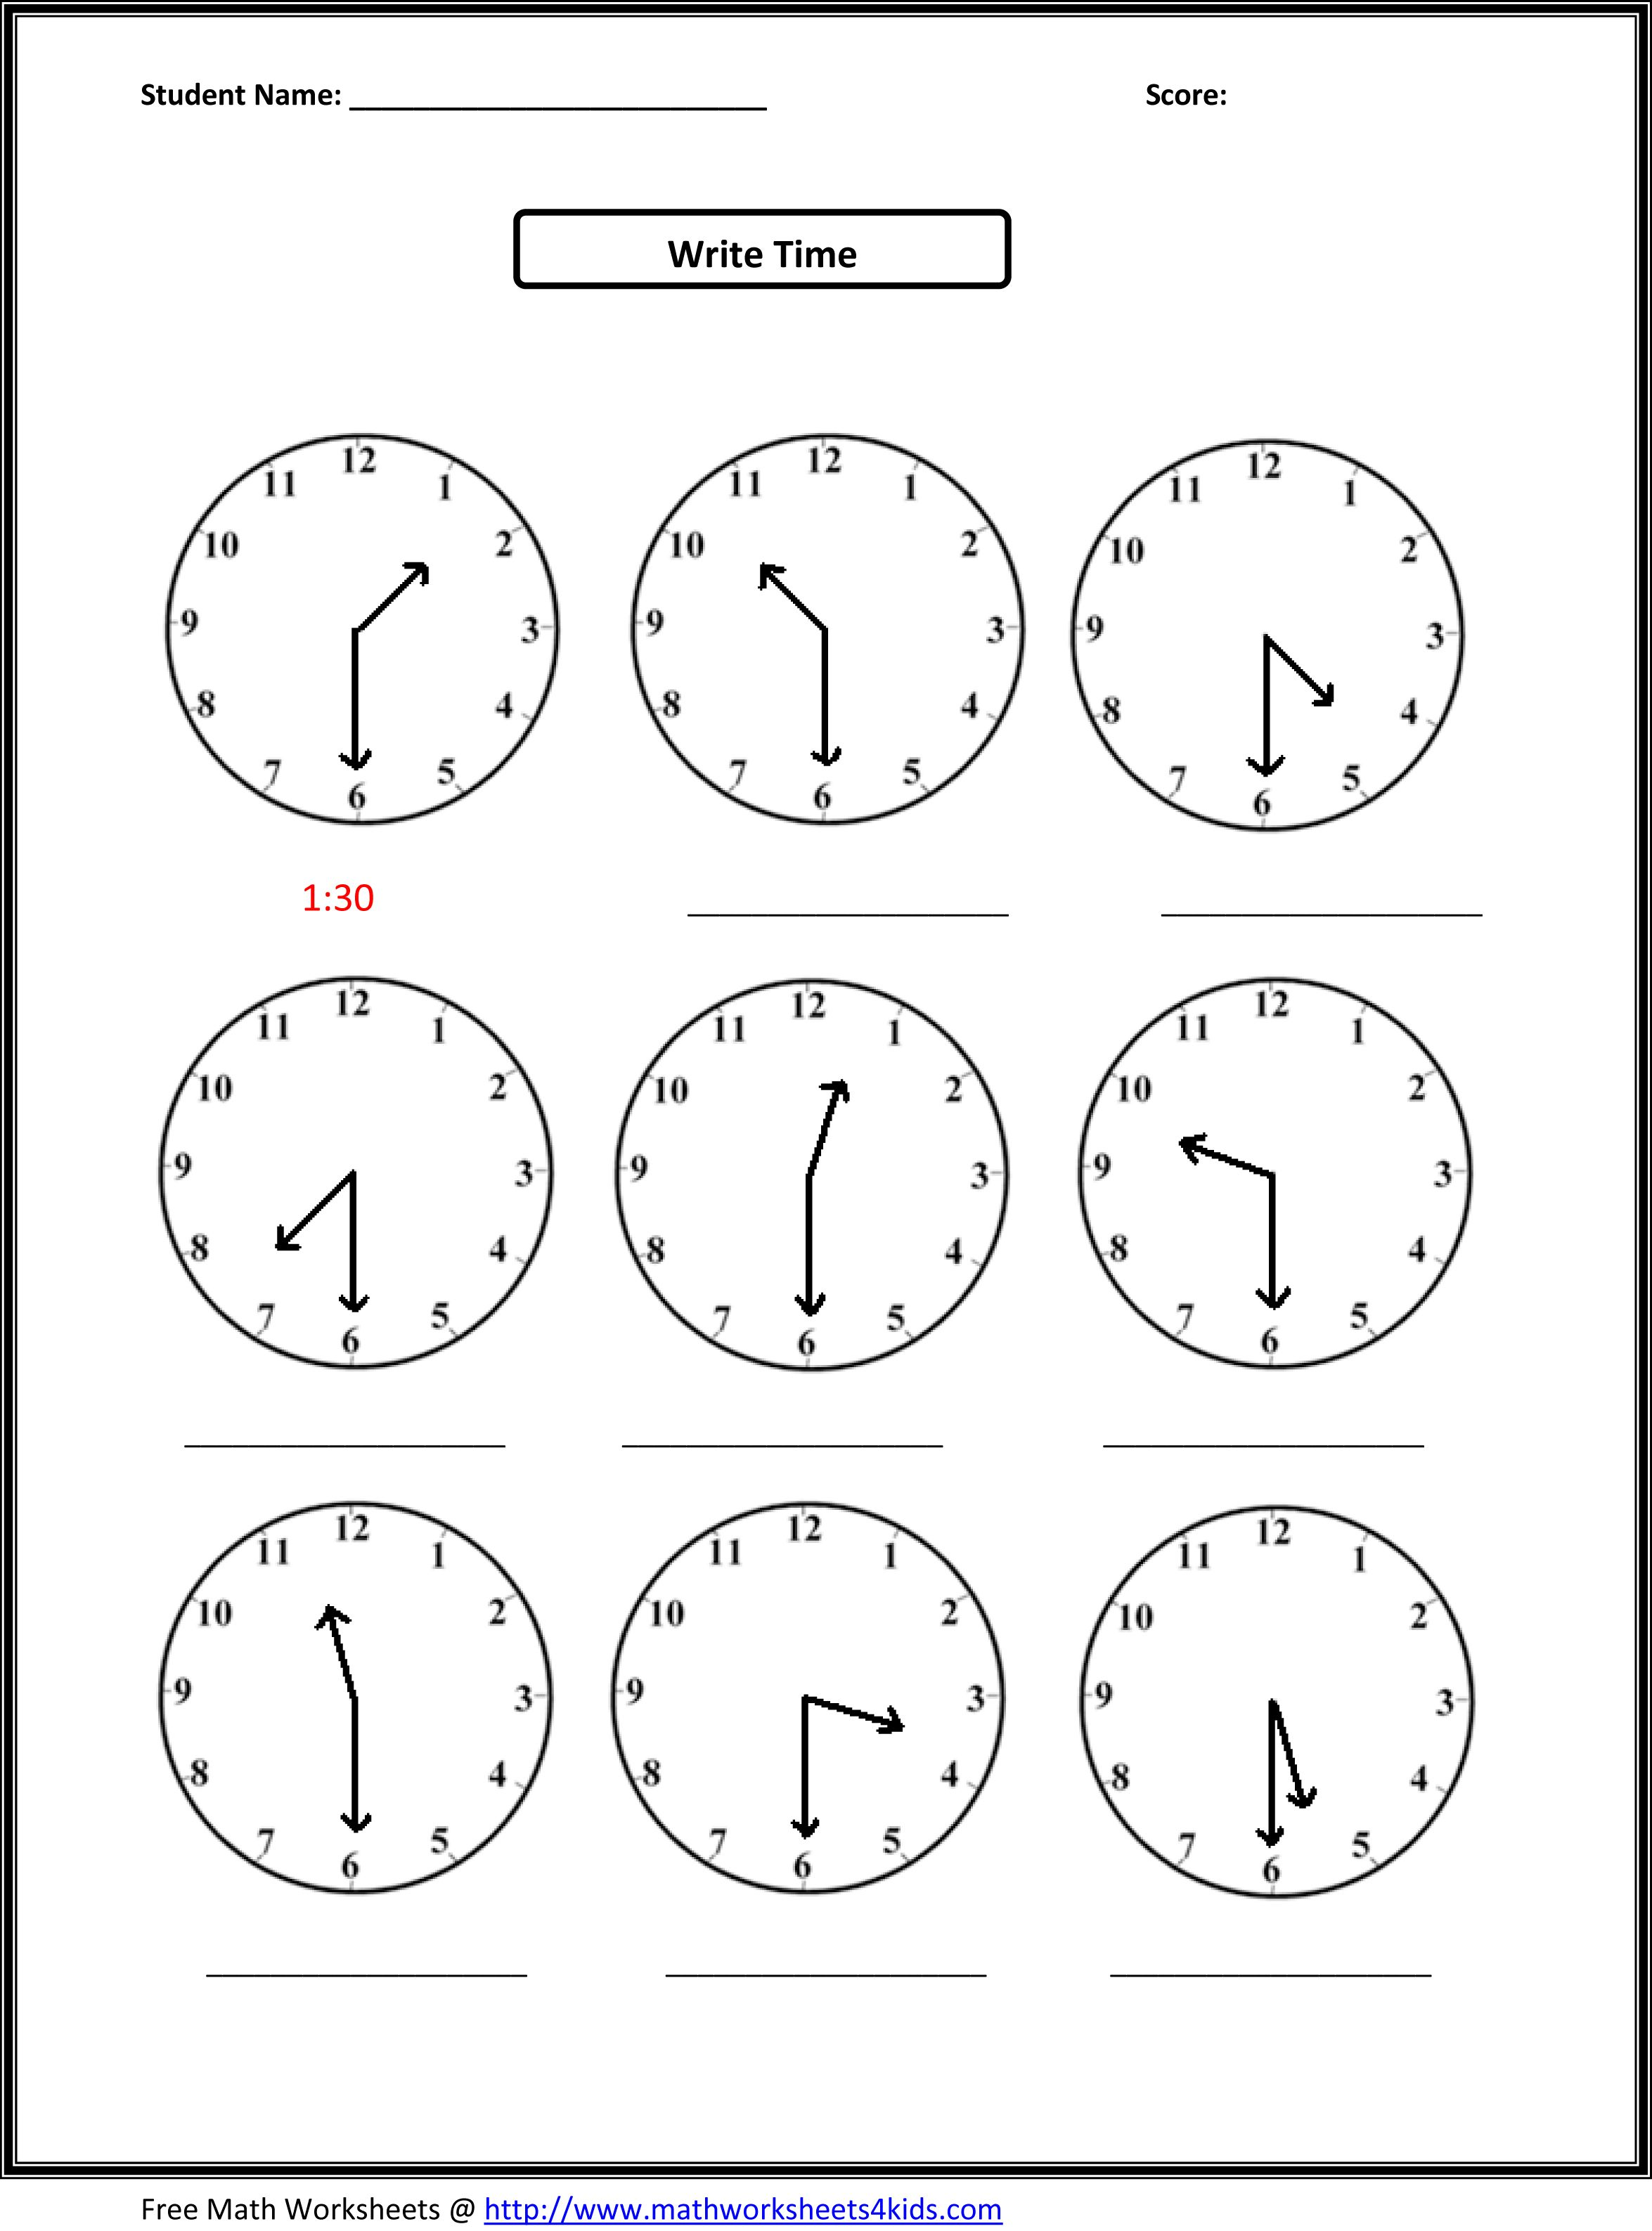 Proatmealus  Mesmerizing Worksheet On Time For Grade   Reocurent With Marvelous Free Printable Telling Time Worksheets Nd Grade  Reocurent With Captivating Naming Part Of A Sentence Worksheets Also Colors Printable Worksheets In Addition Homonyms Worksheets For Grade  And Practise Handwriting Worksheets As Well As Math Worksheets For Grade  Free Additionally Order Of Adjectives Worksheet Free From Reocurentcom With Proatmealus  Marvelous Worksheet On Time For Grade   Reocurent With Captivating Free Printable Telling Time Worksheets Nd Grade  Reocurent And Mesmerizing Naming Part Of A Sentence Worksheets Also Colors Printable Worksheets In Addition Homonyms Worksheets For Grade  From Reocurentcom